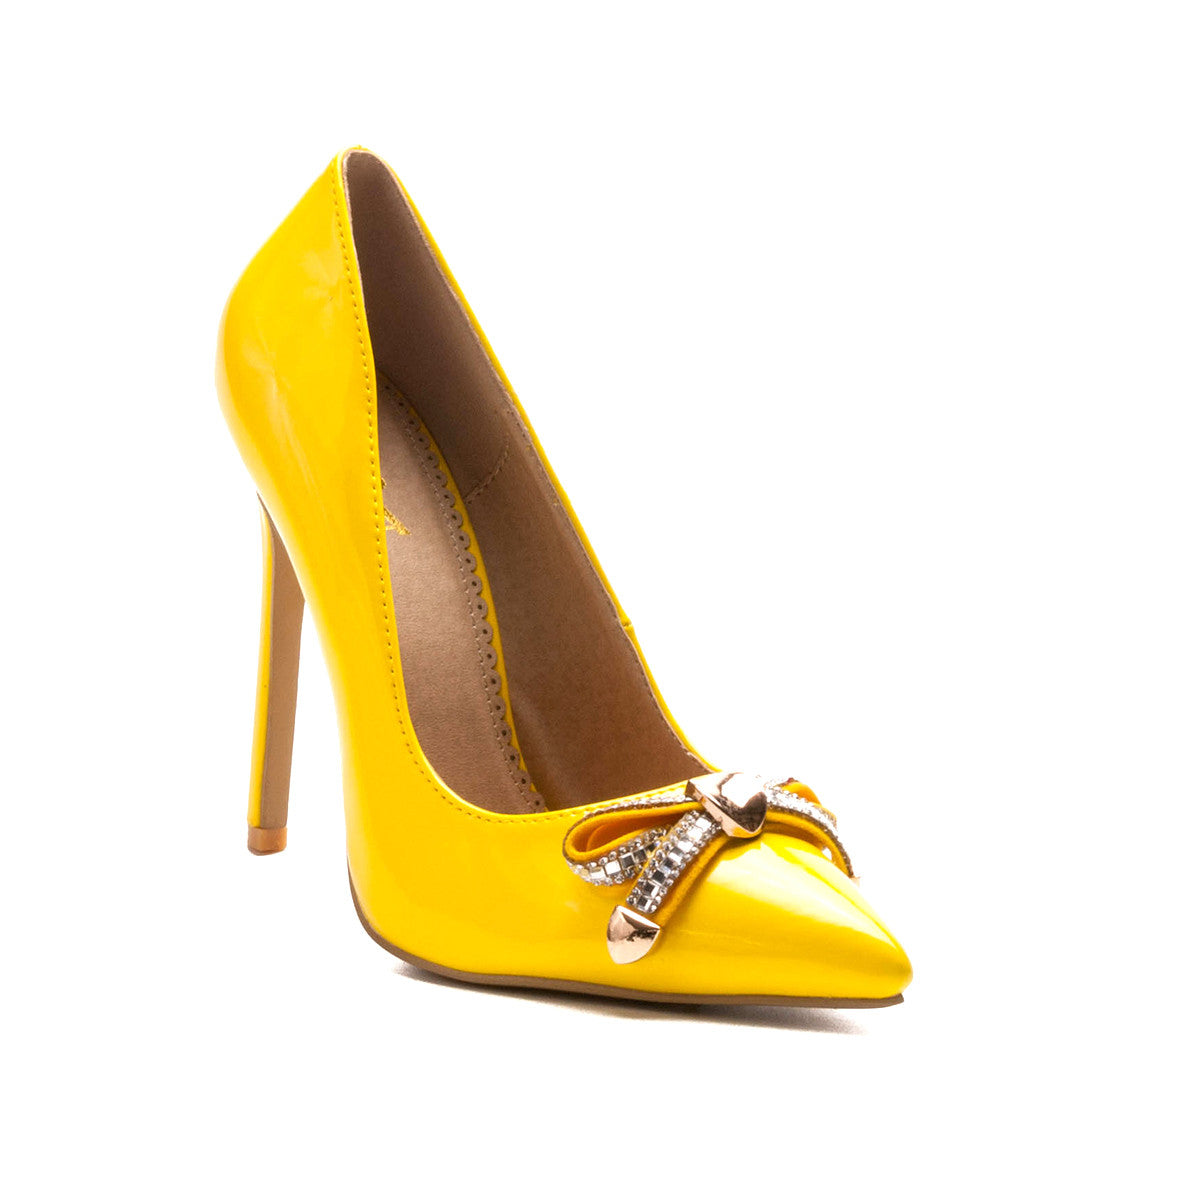 Alba Ricky24 Yellow Pointy Toe Bow Hearts Pump Heels – CherryMad